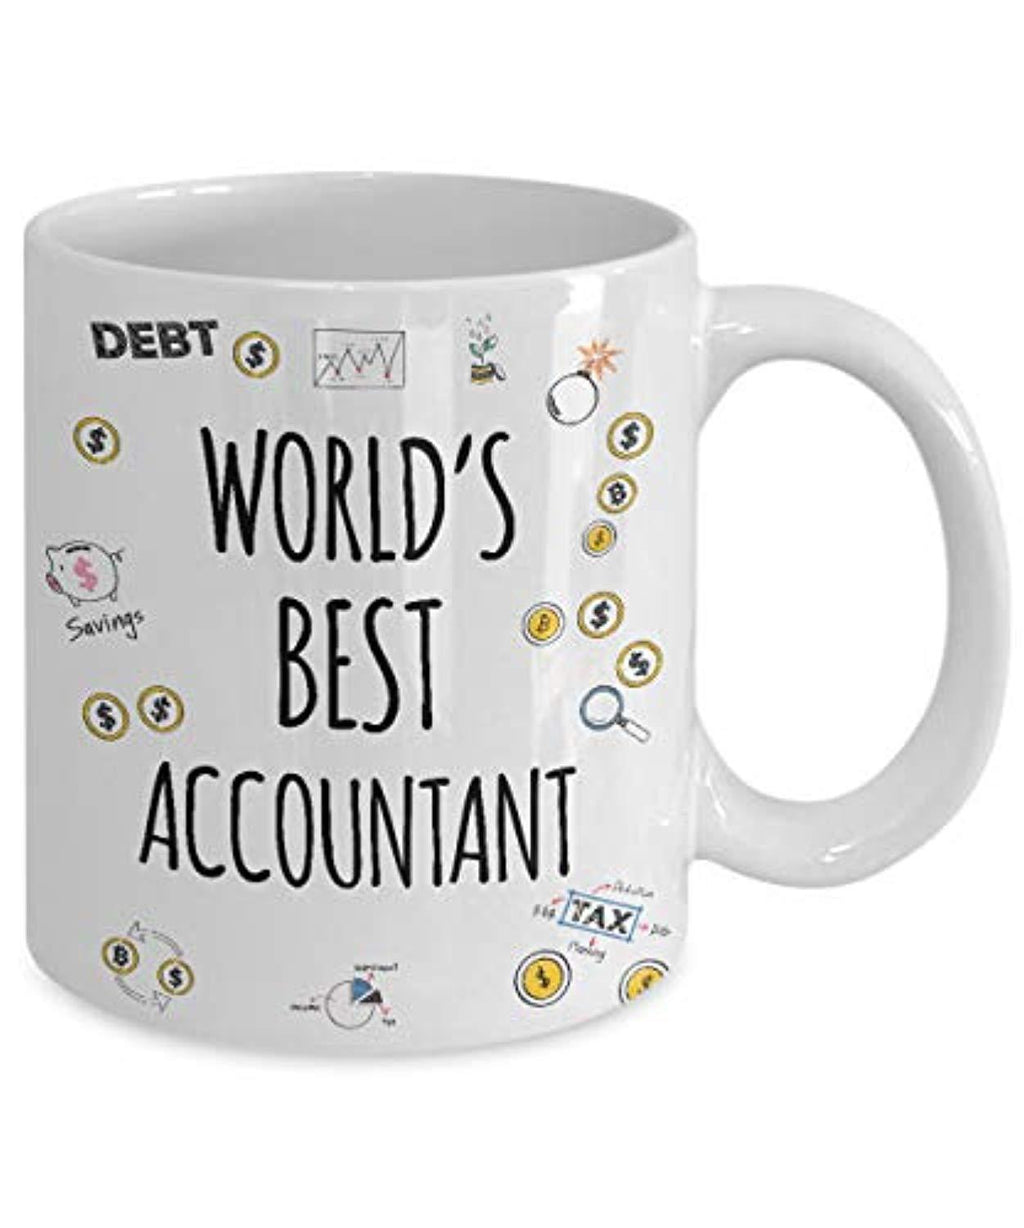 World's Best Accountant Coffee Mug CPA Tax Season Cup